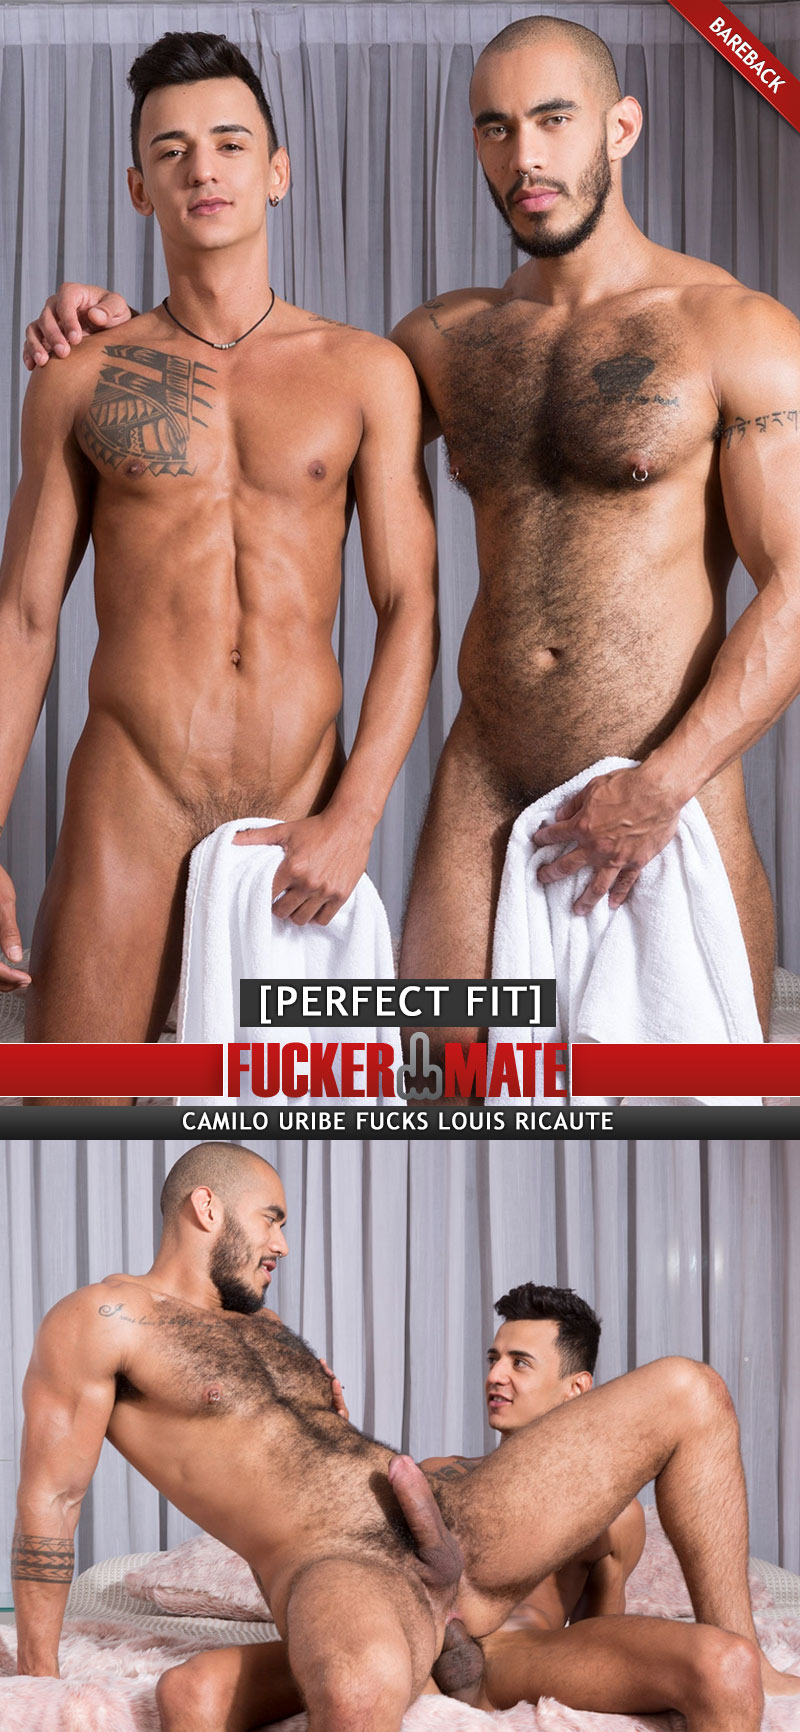 Perfect Fit (Camilo Uribe Fucks Louis Ricaute) (Bareback) at Fuckermate